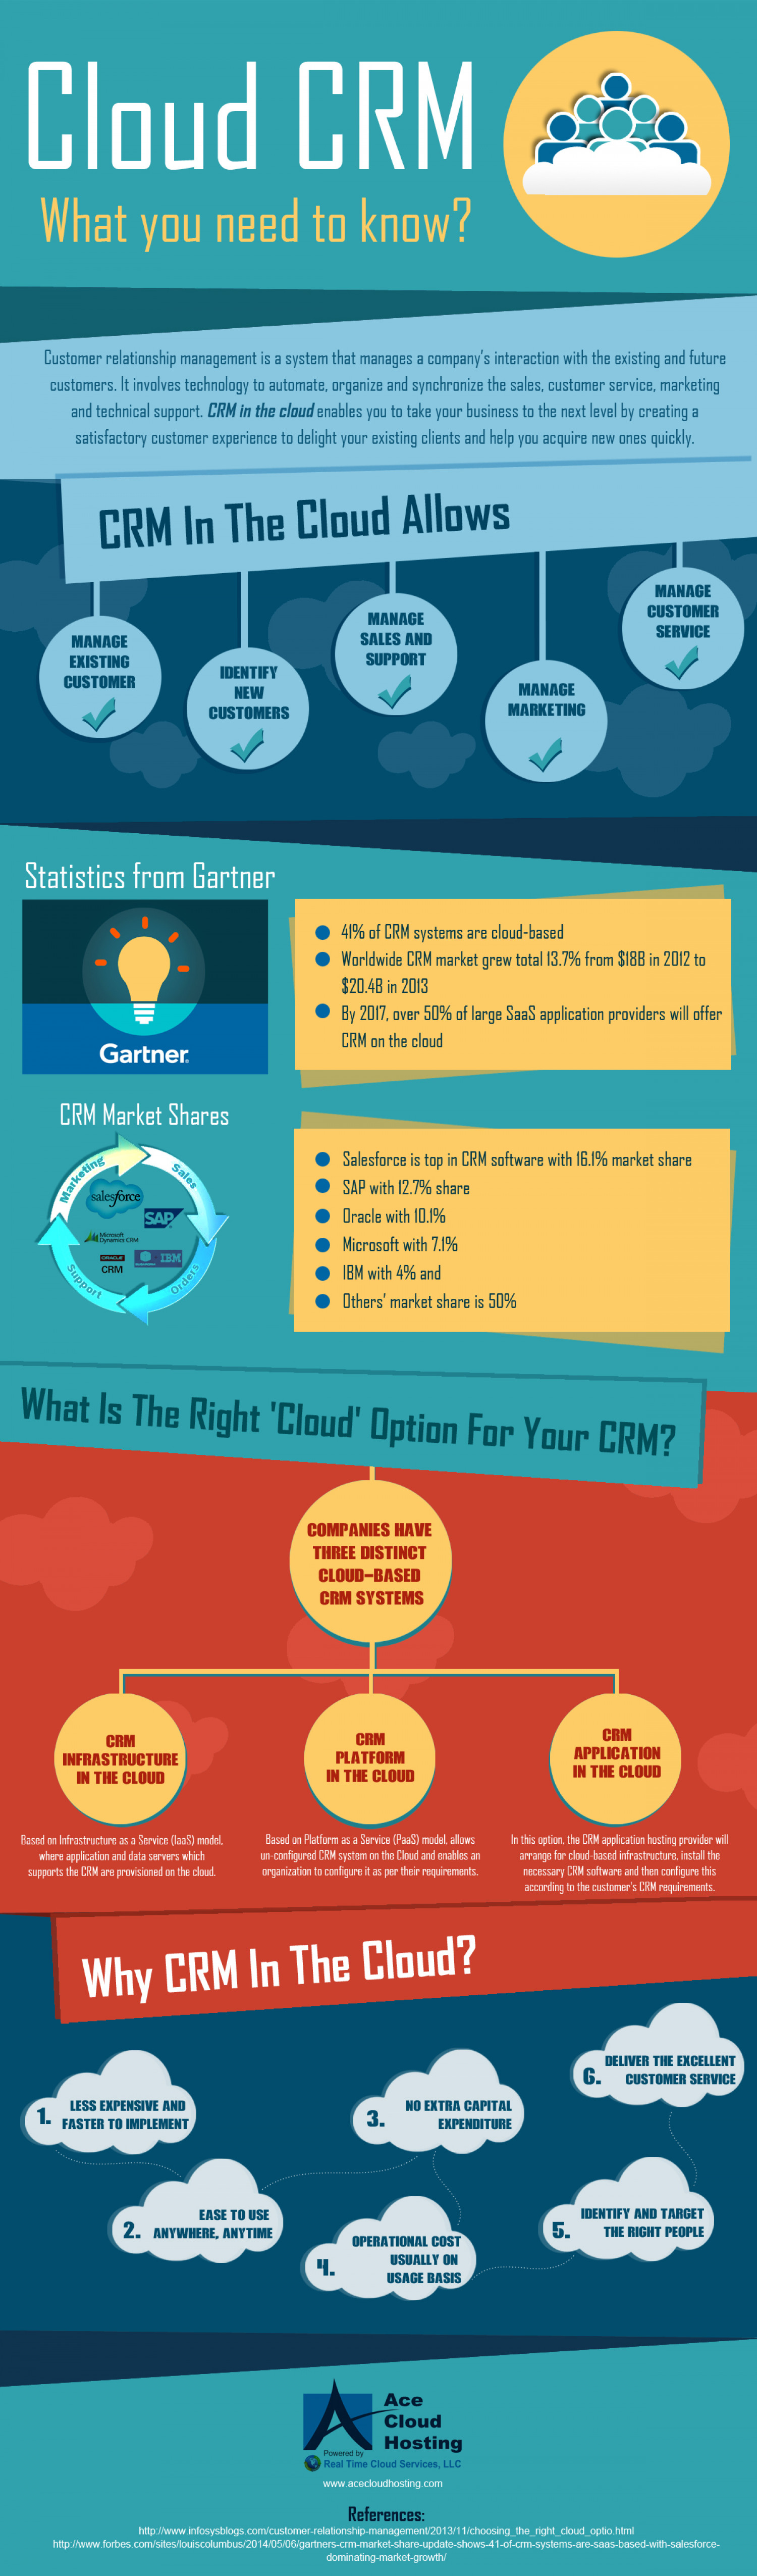 Cloud-Based CRM: All That You Need To Know Infographic